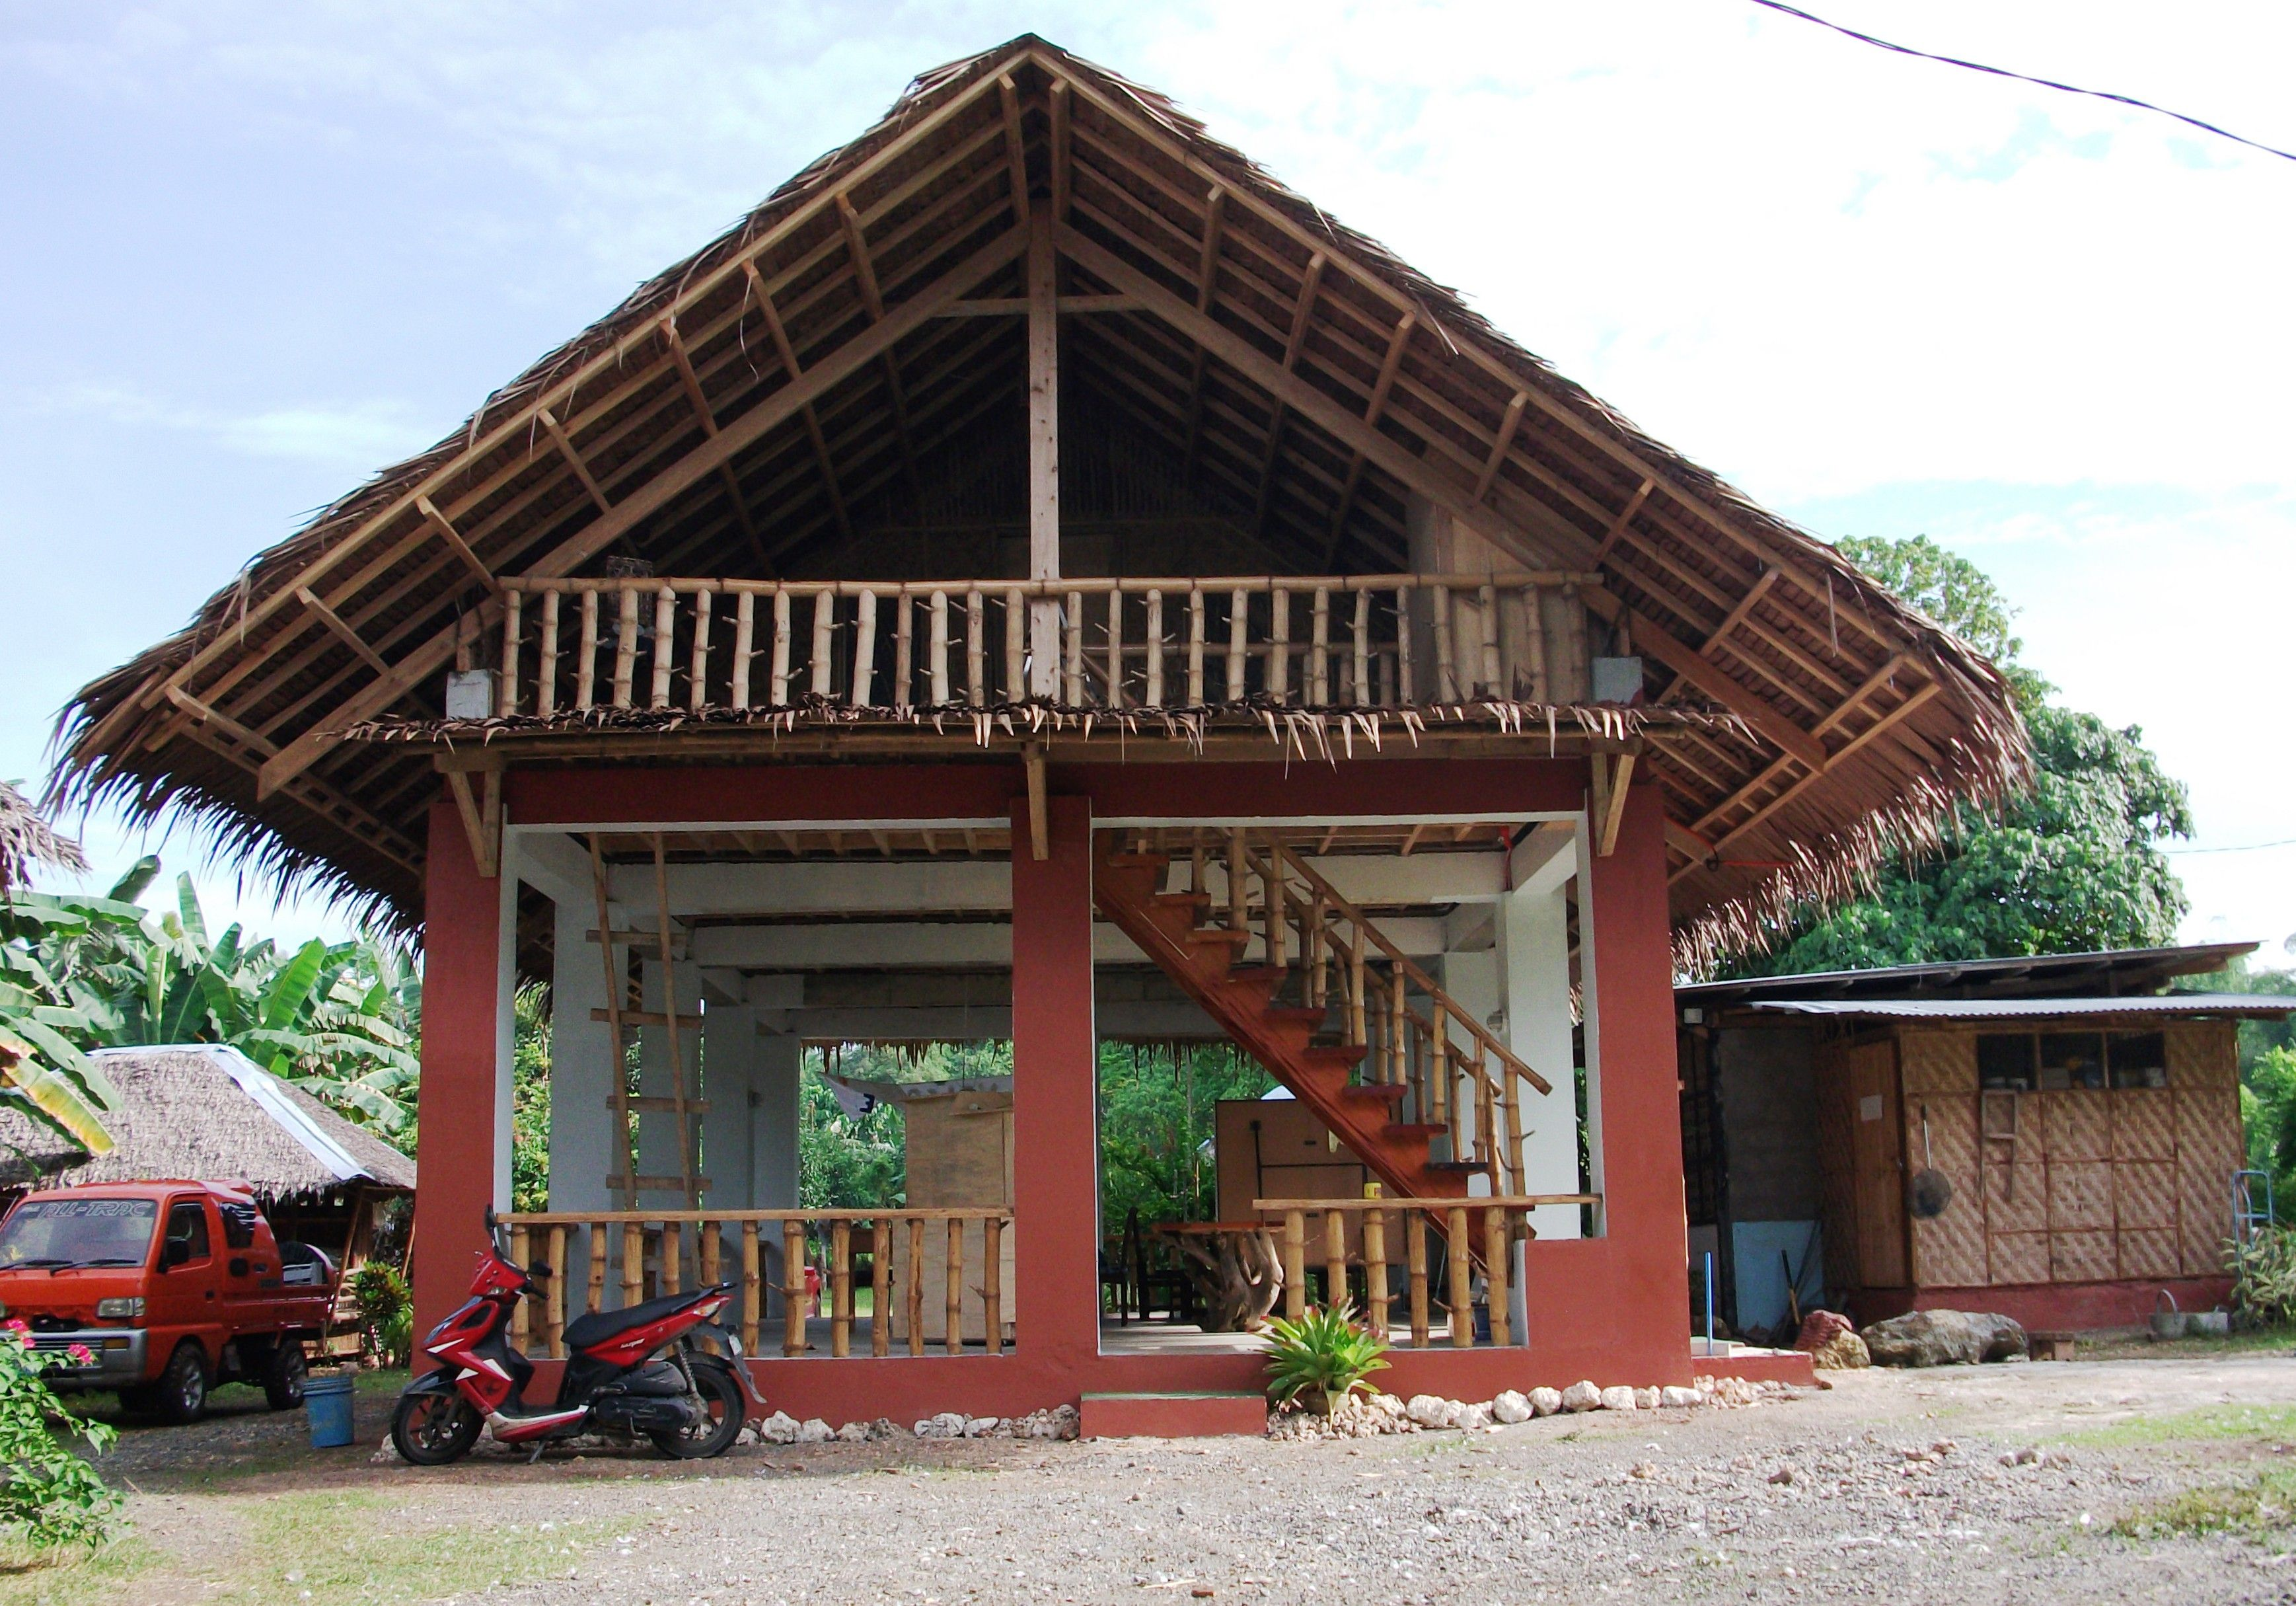 Discover Ideas About Rest House Native Design In The Philippines